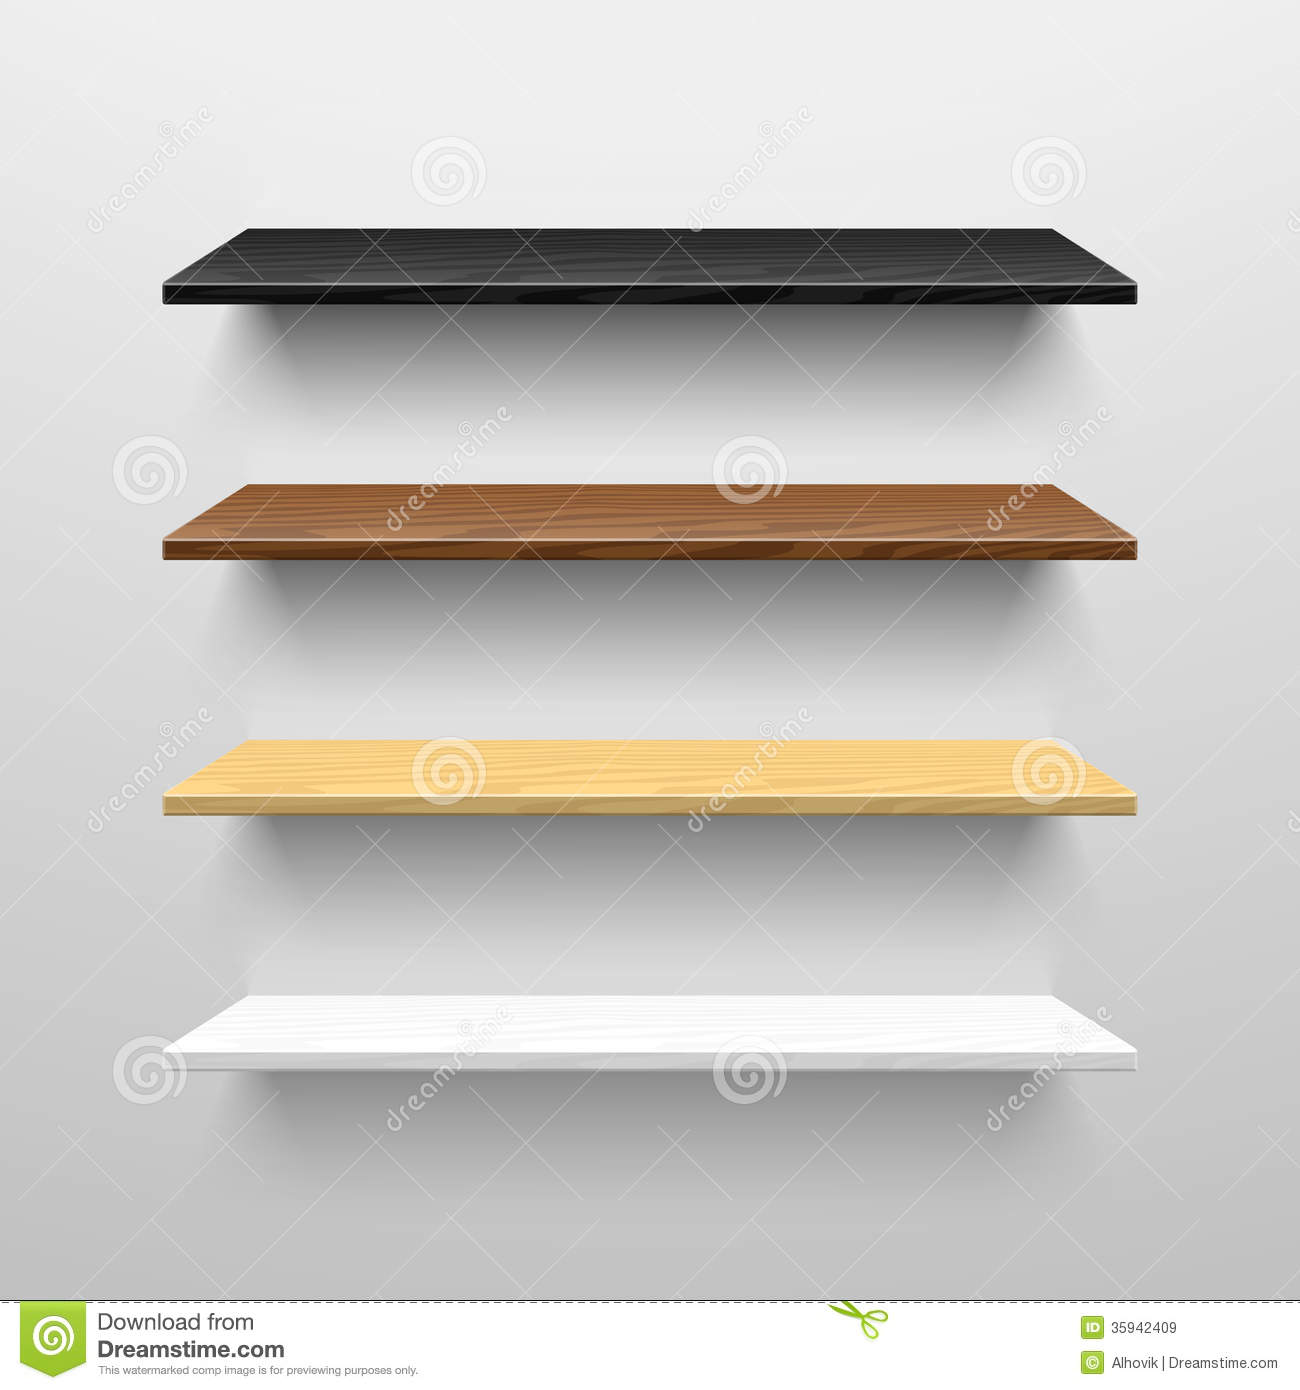 Wooden Shelves Royalty Free Stock Images - Image: 35942409